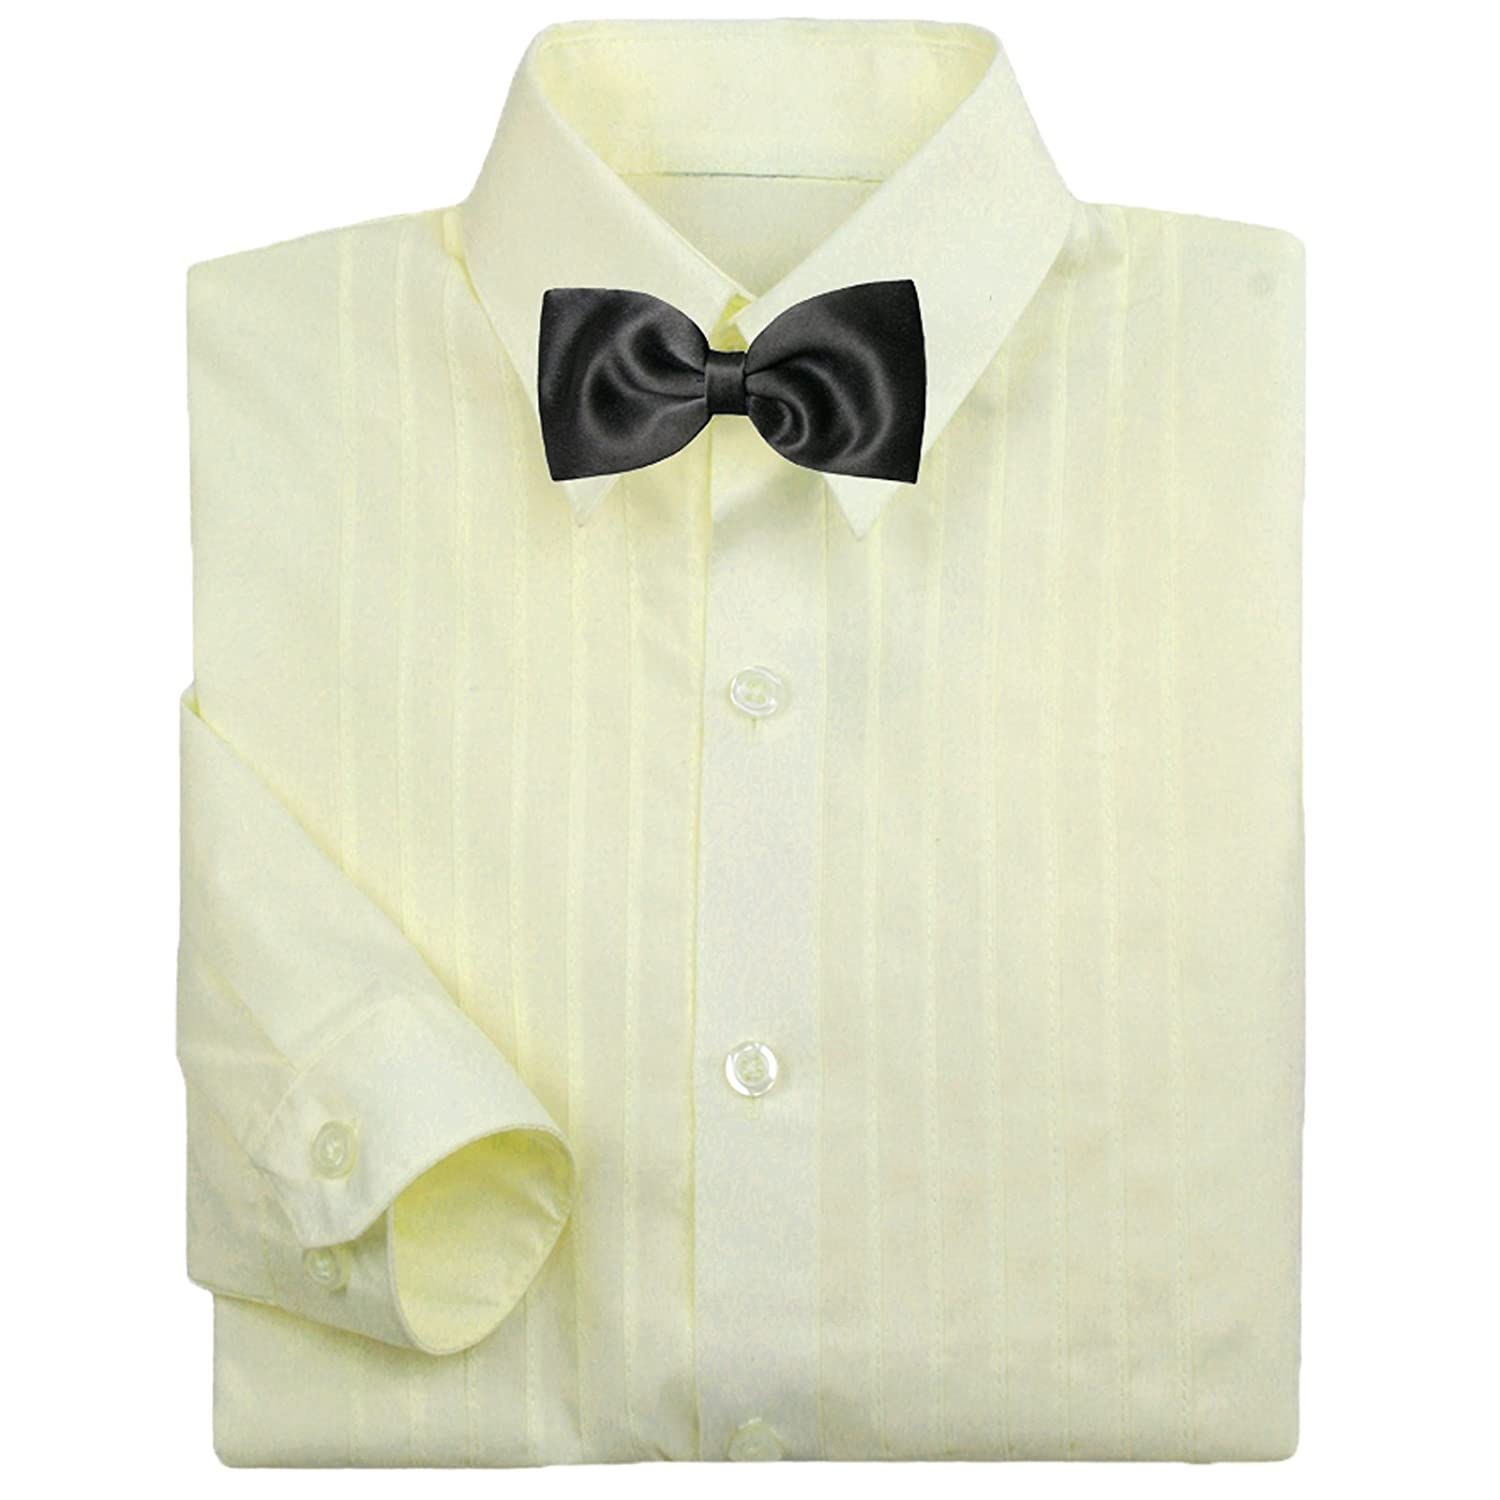 Baby Boy Kid Formal Tuxedo Suit Ivory Dress Shirt Color w/ Black Bow tie 0-7